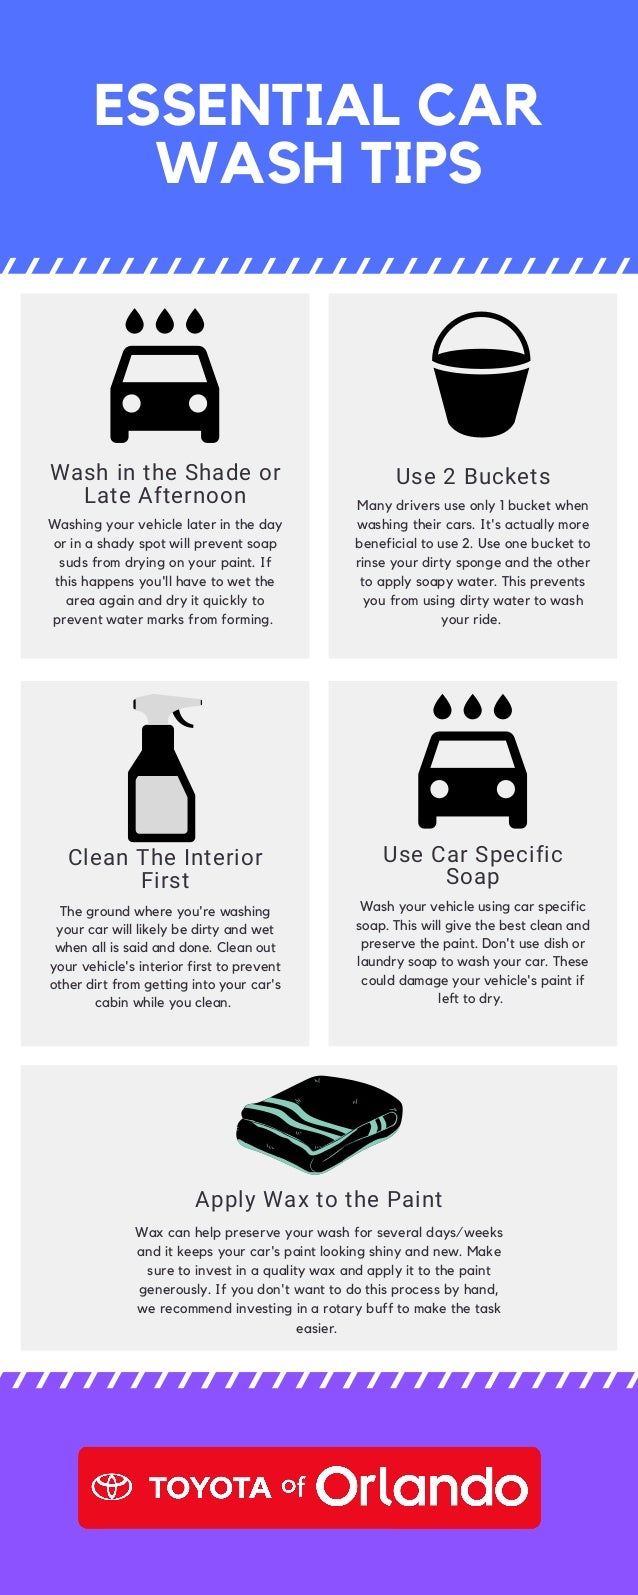 Clean The Interior First The ground where you're washing your car will likely be dirty and wet when all is said and done. ...